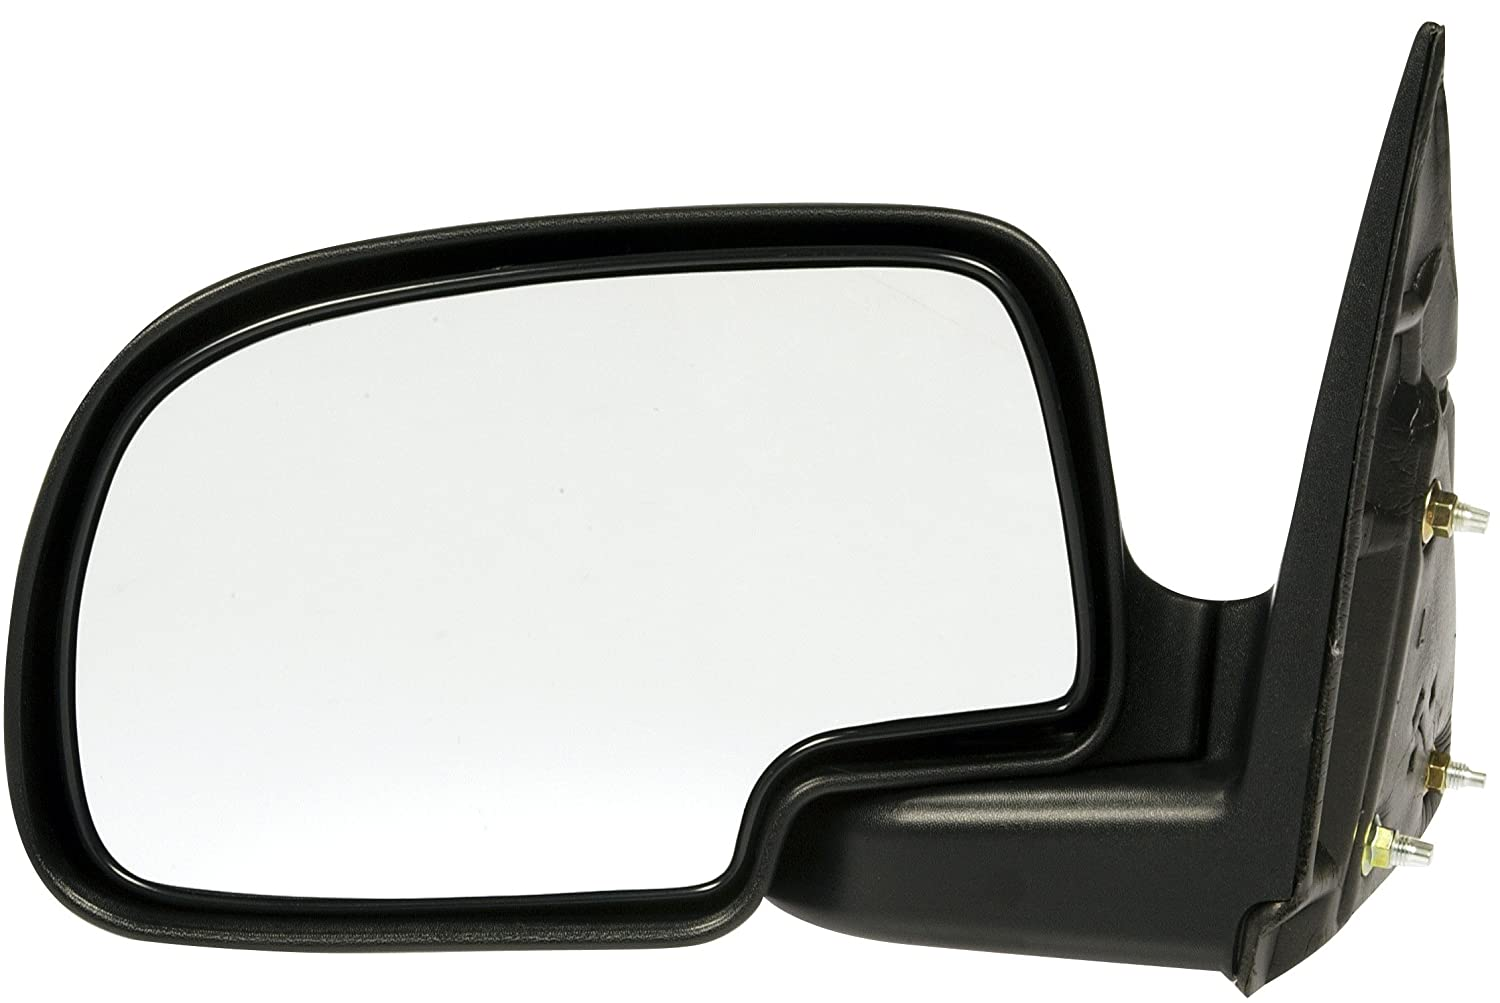 Dorman 955-1179 Chevrolet//GMC Driver Side Manual Fold Away Side View Mirror